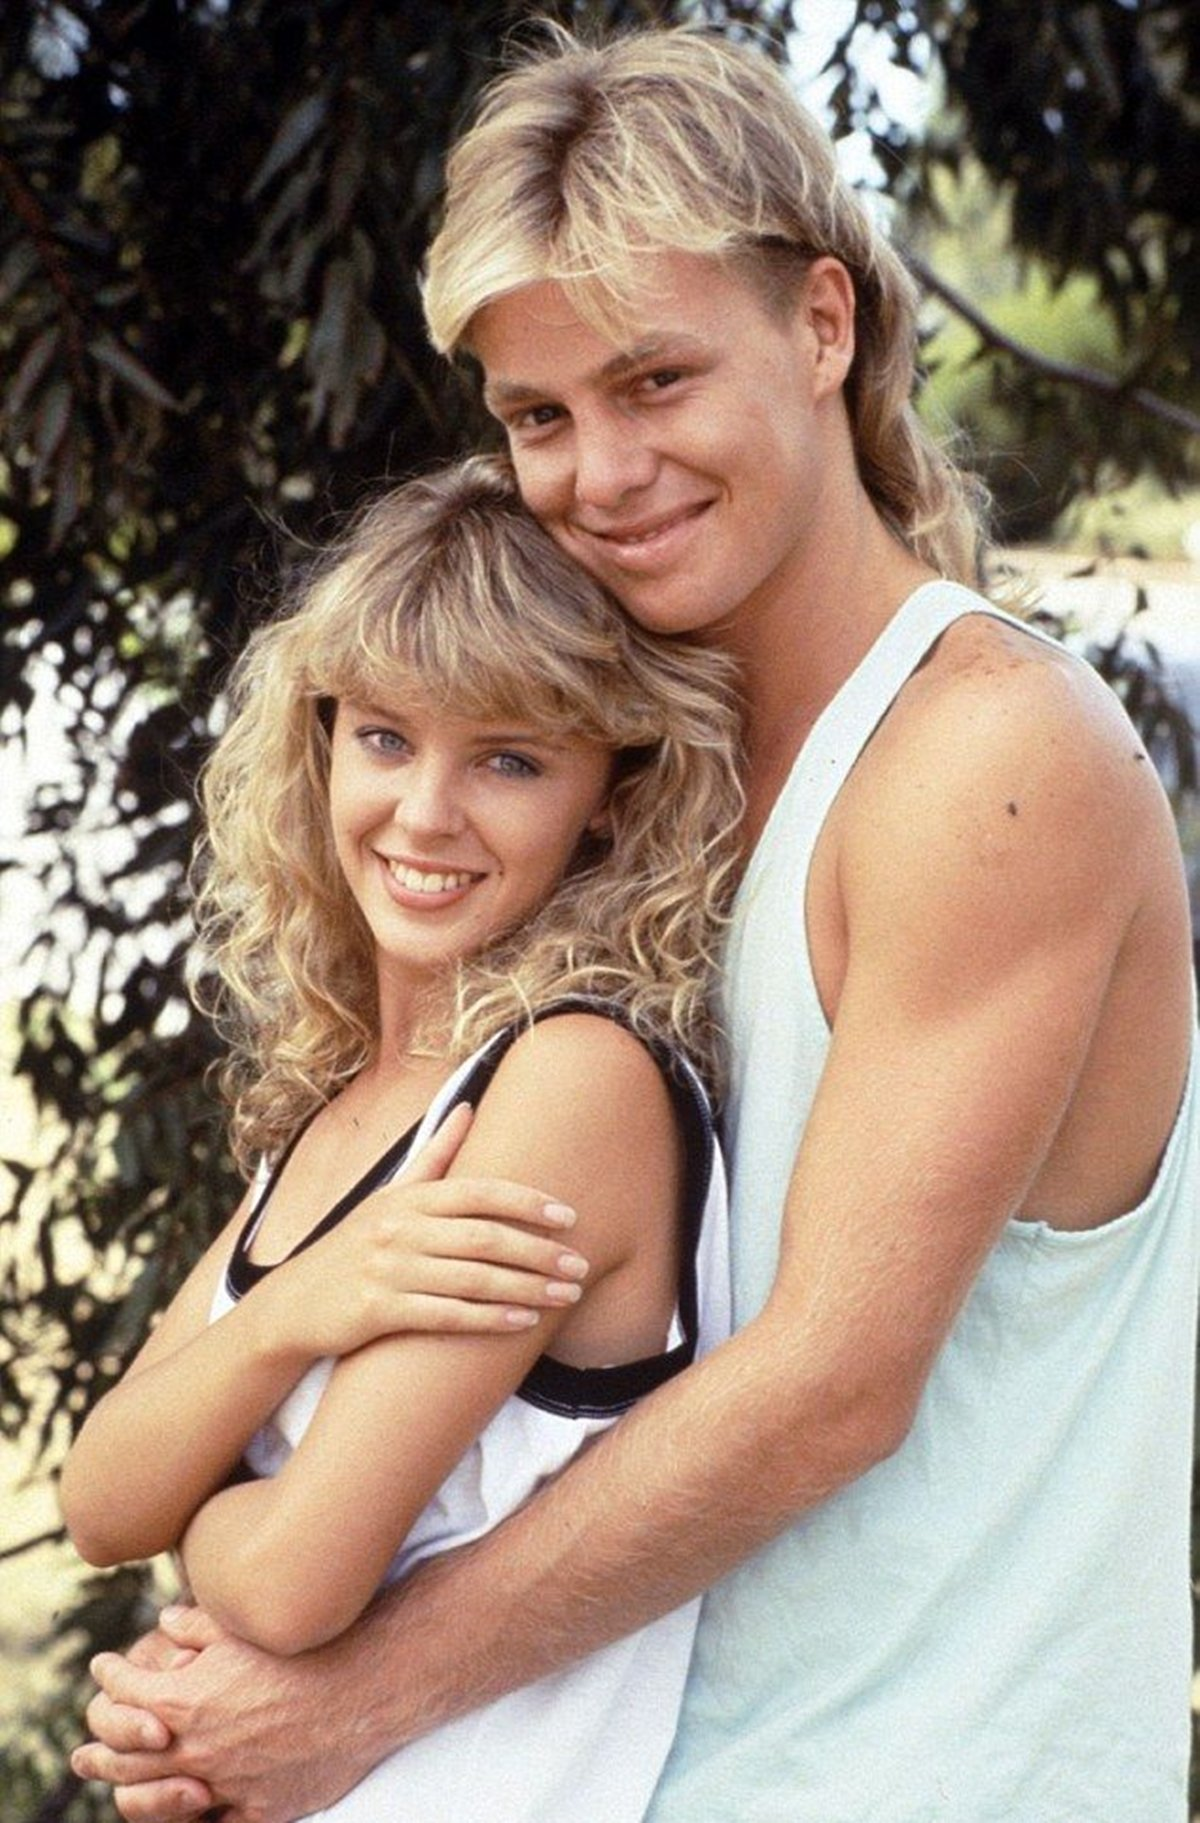 5 34 10 Things You Probably Didn't Know About Jason Donovan